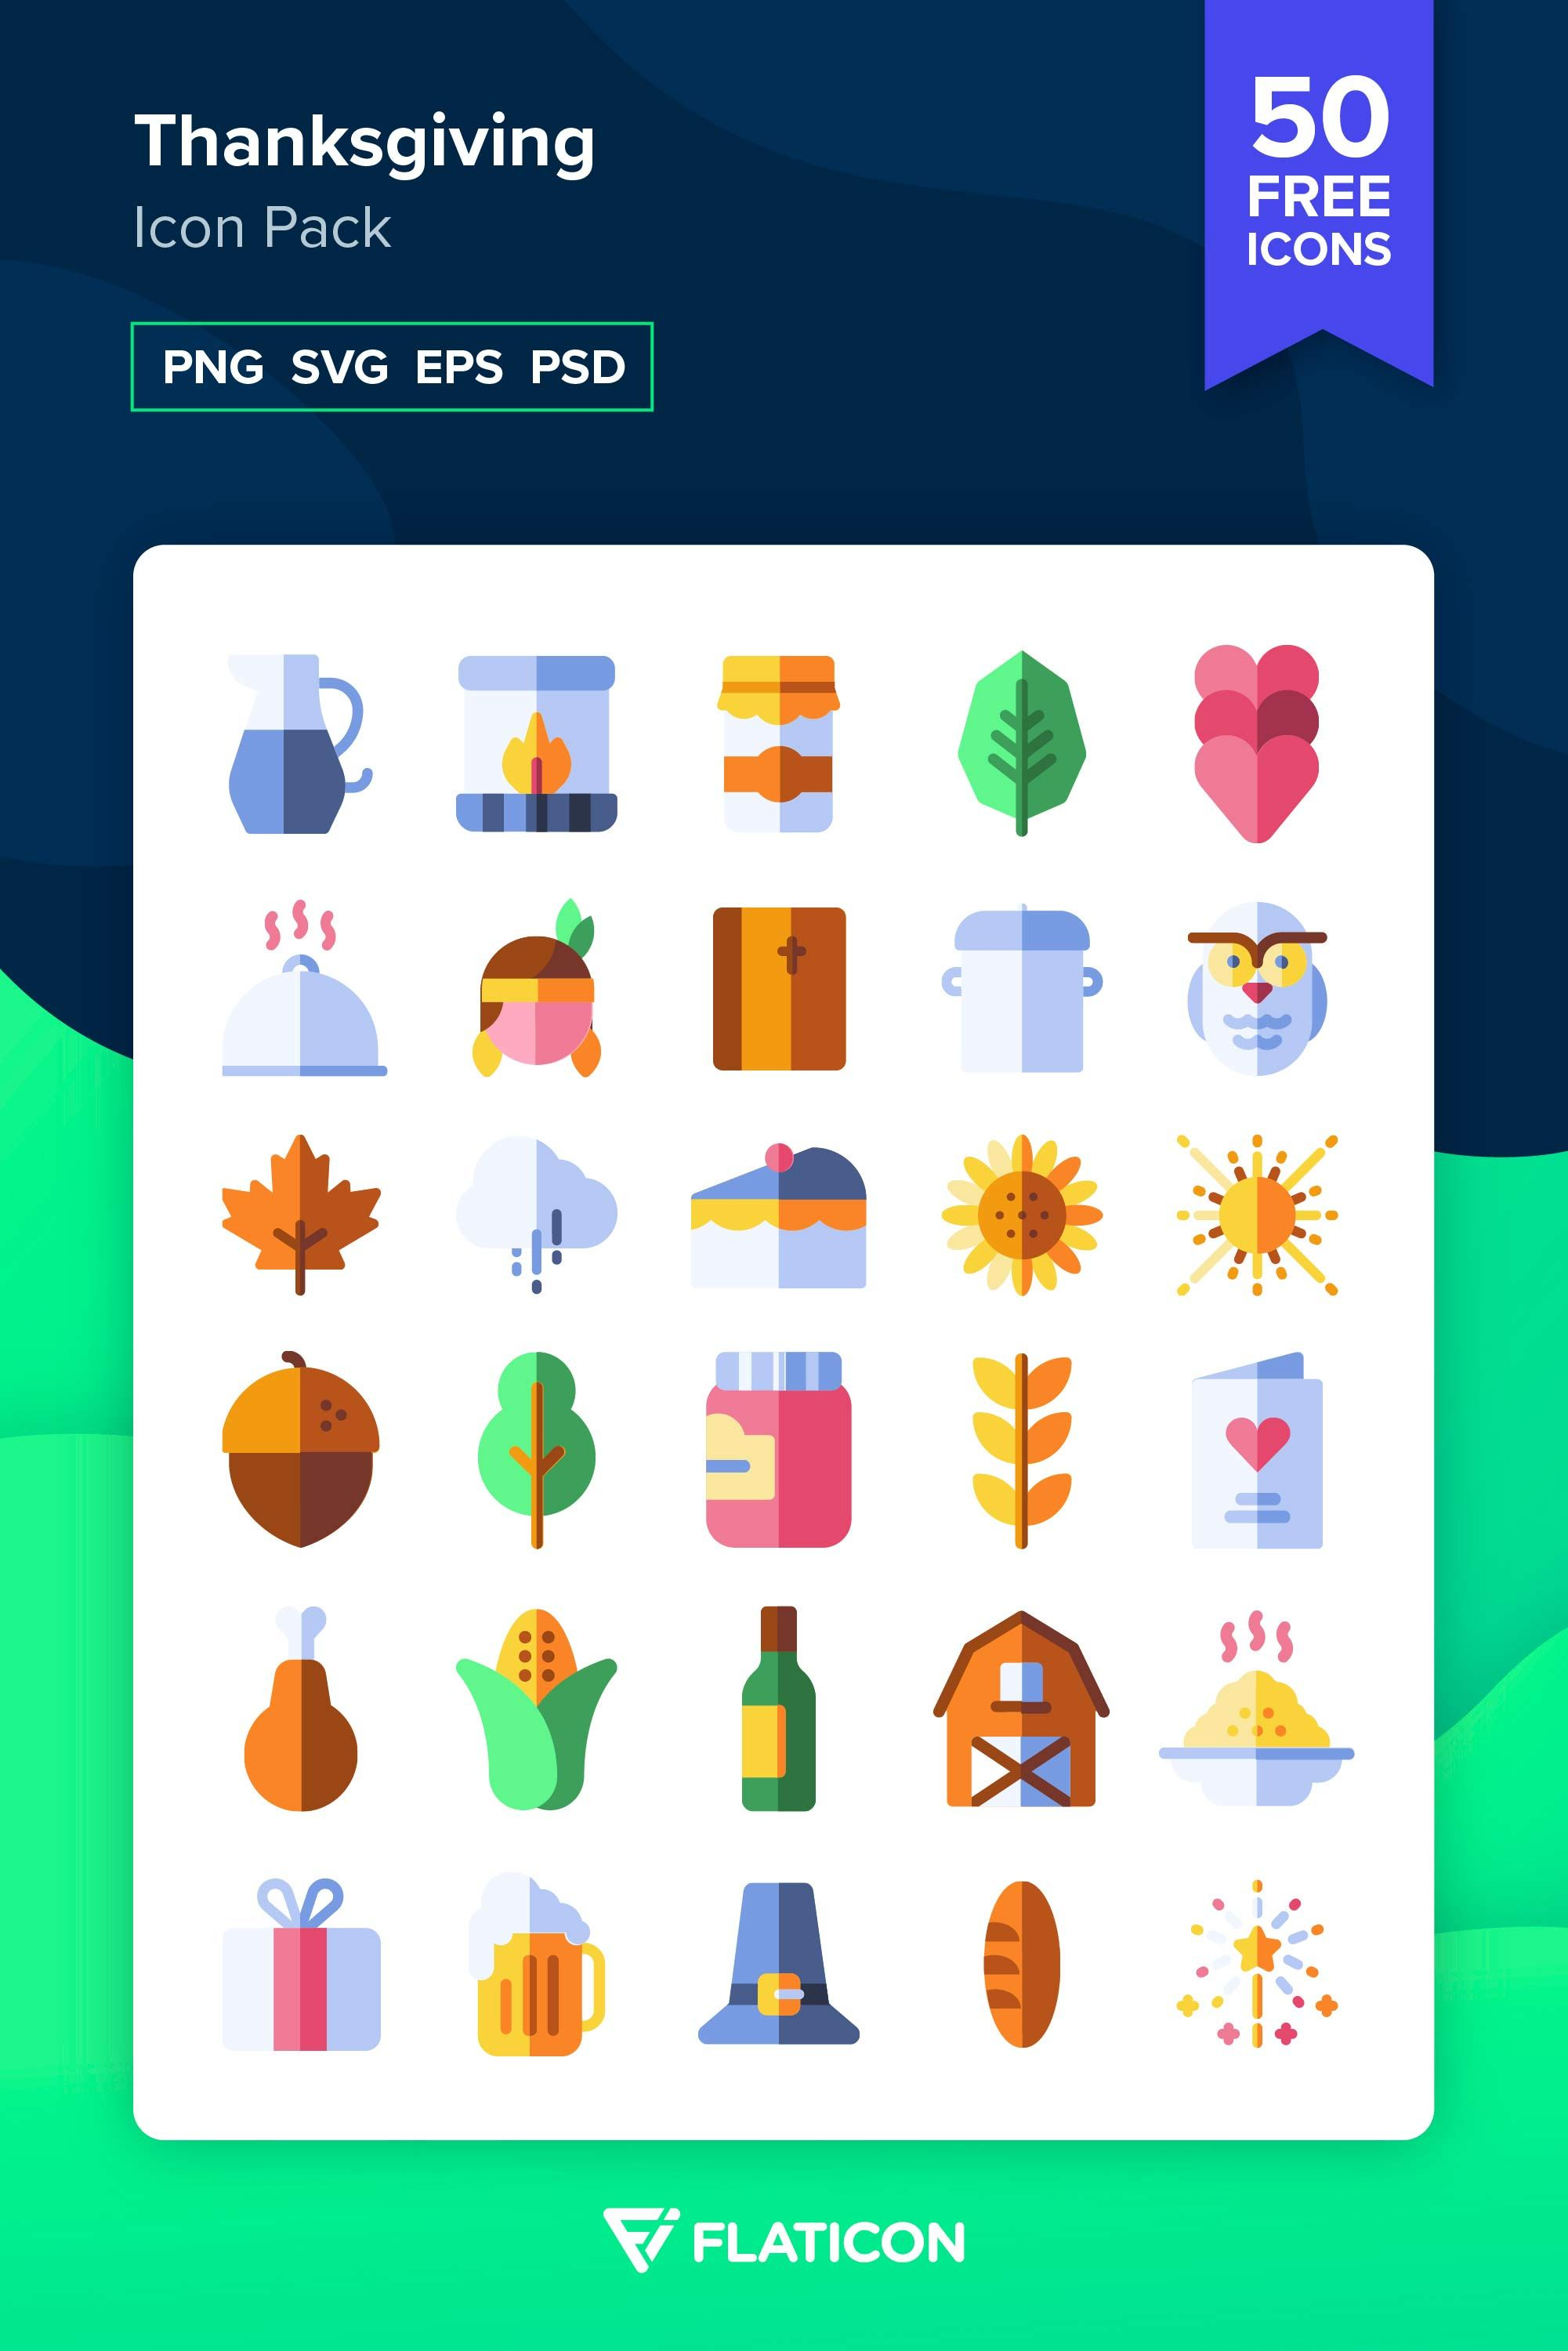 50 free vector icons of Thanksgiving designed by Freepik